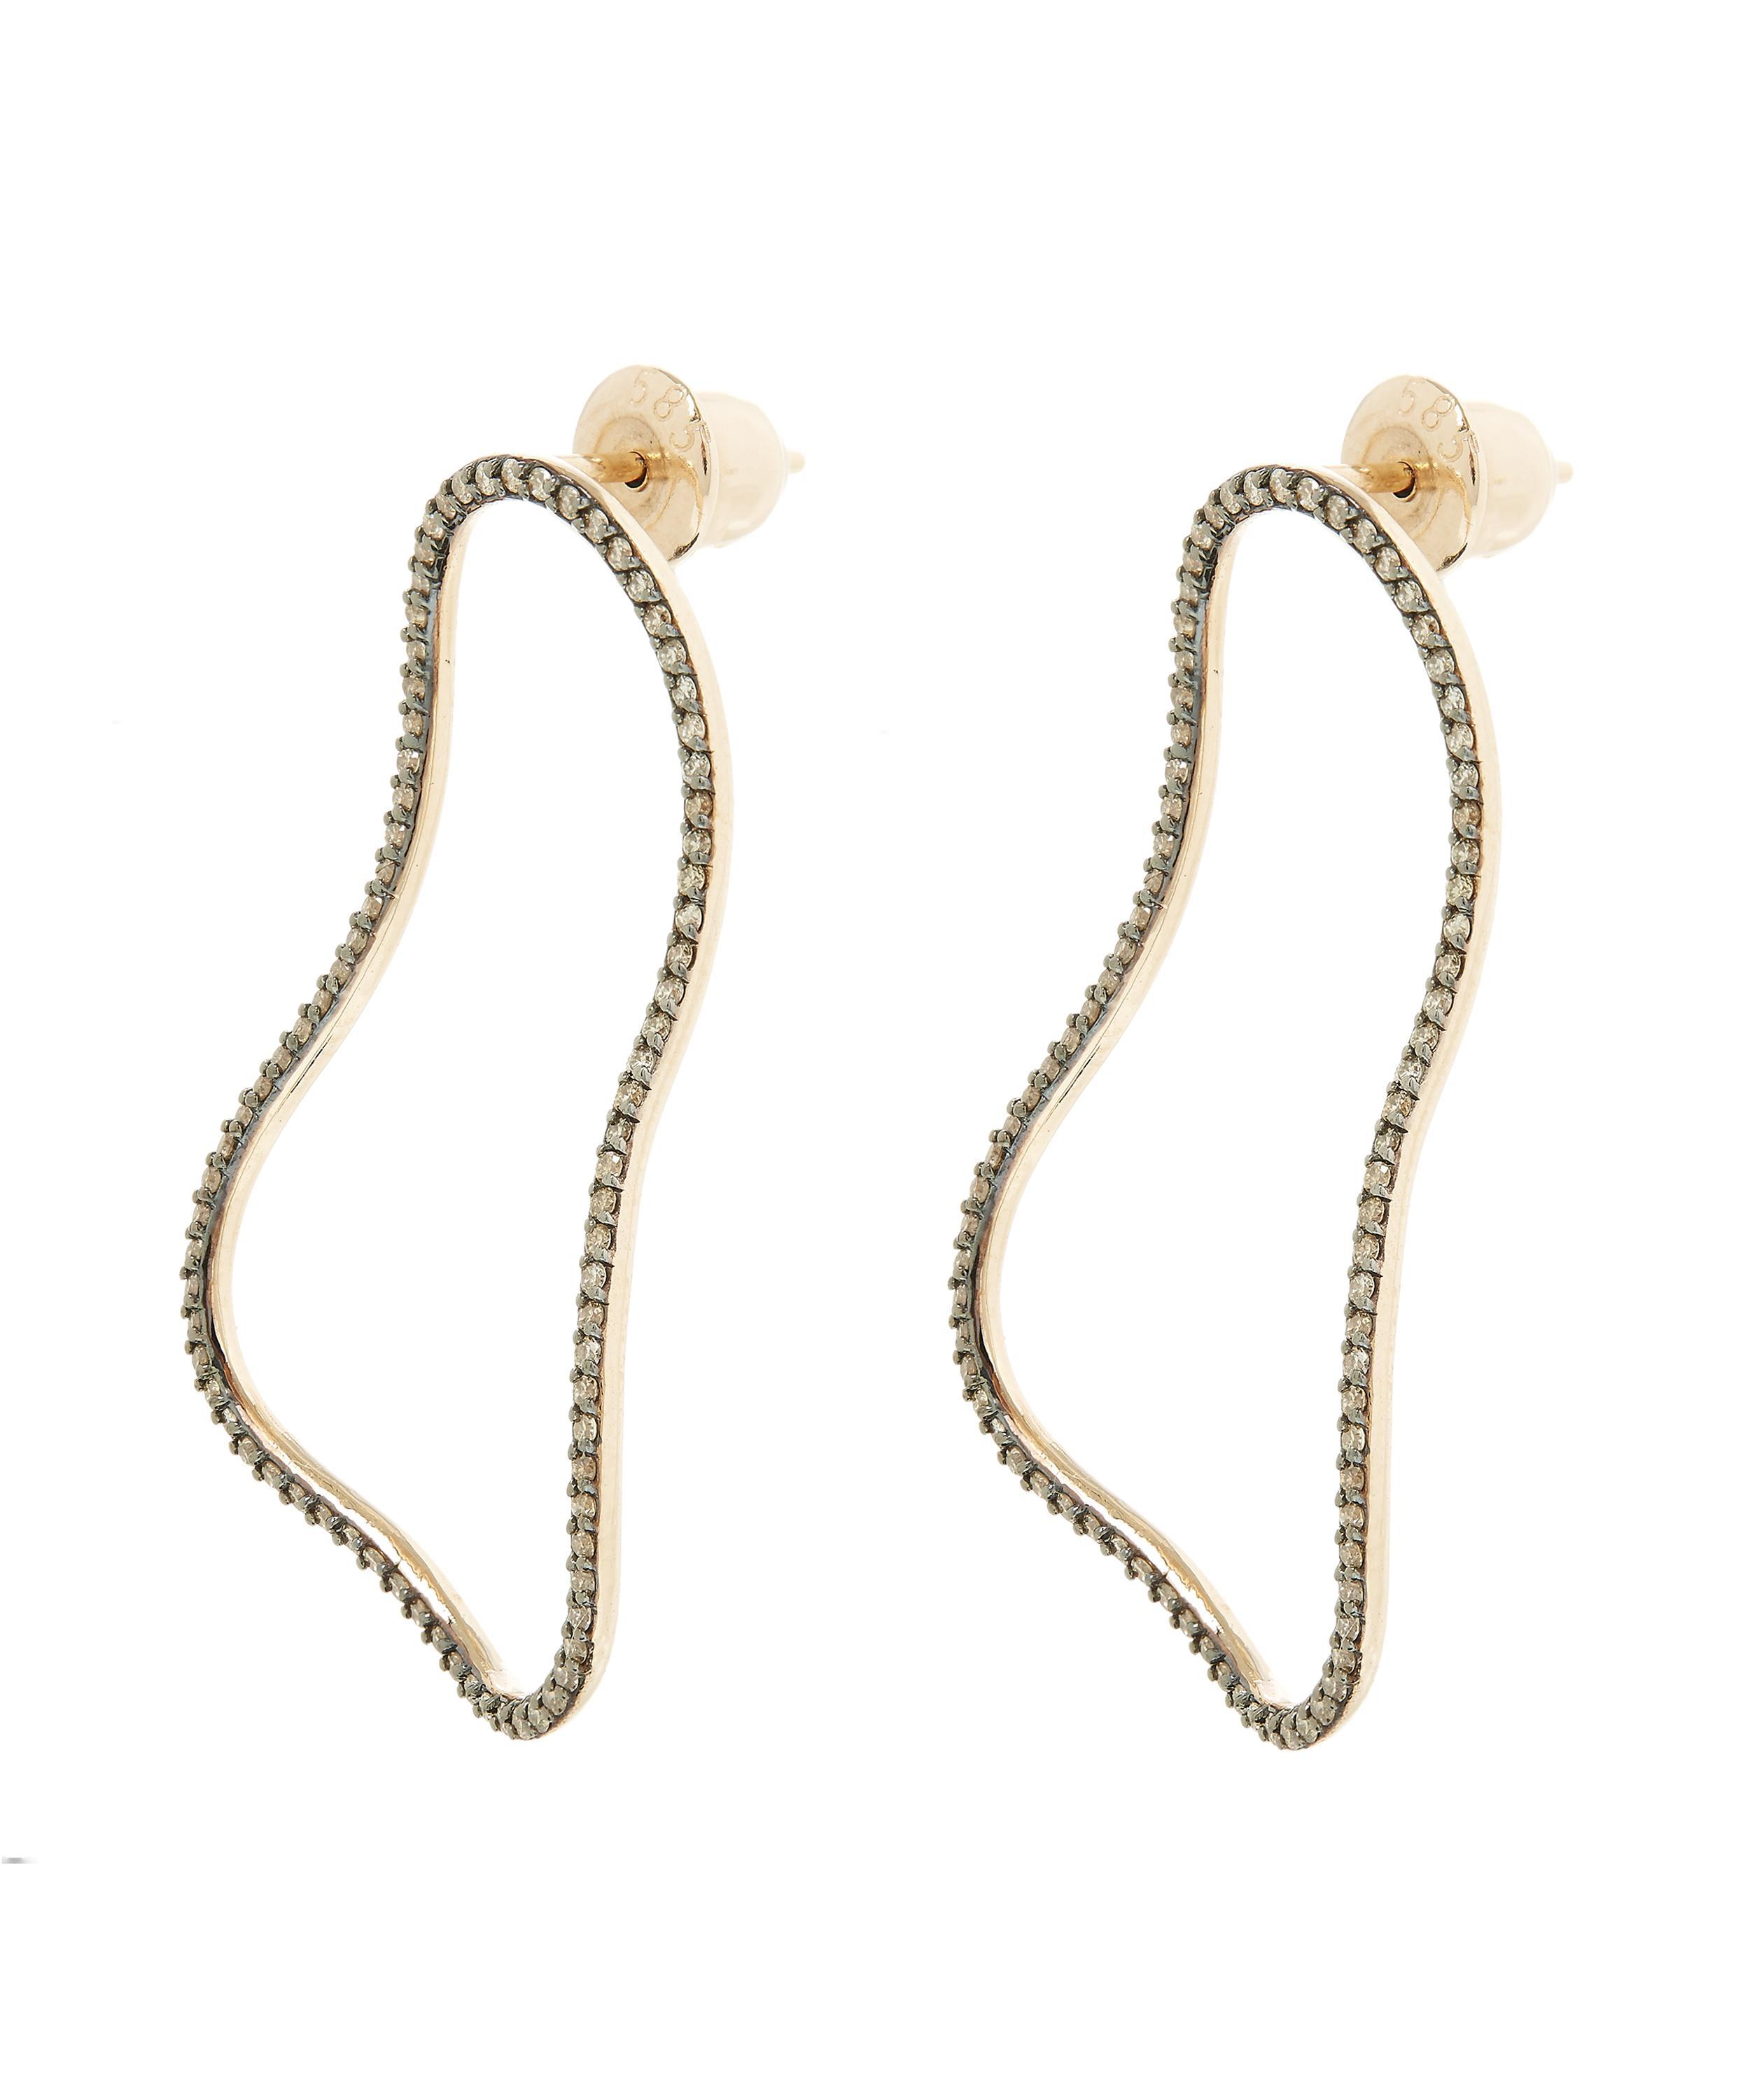 products twinkle jewelry earring single earrings thread jj through hollowell diamond logan